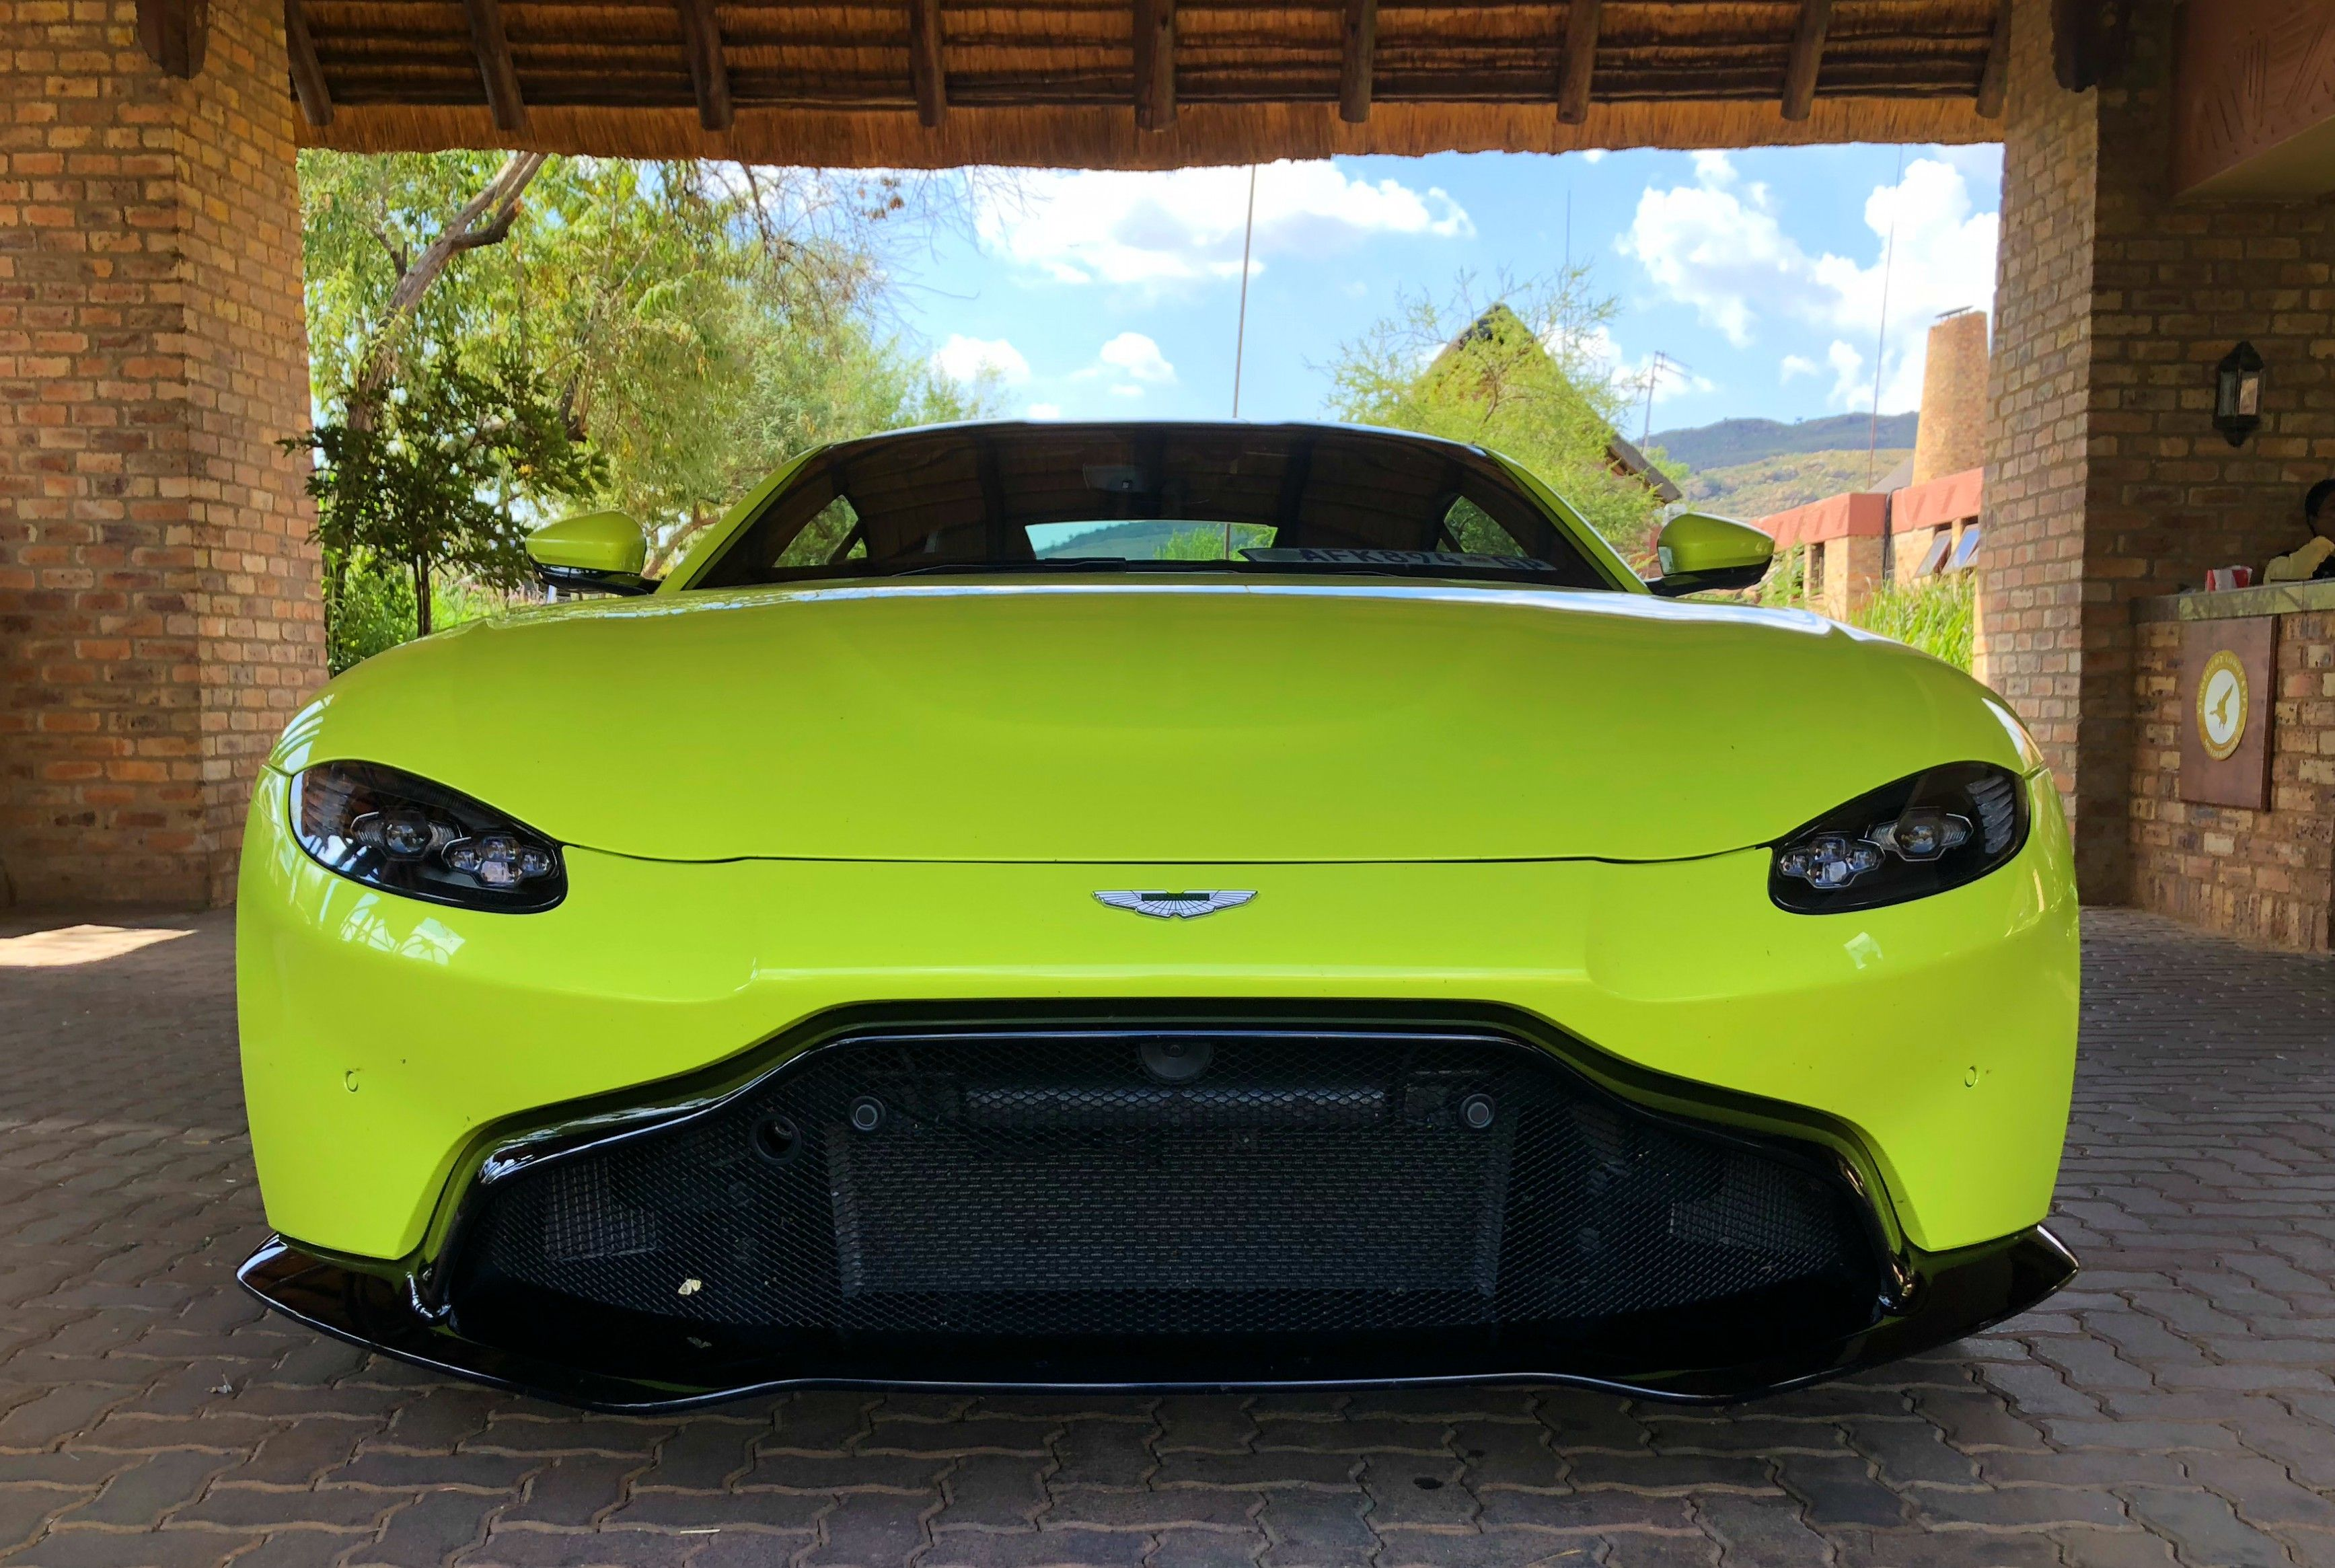 New Aston Martin Vantage Price In South Africa Aston Martin Vantage New Aston Martin Aston Martin